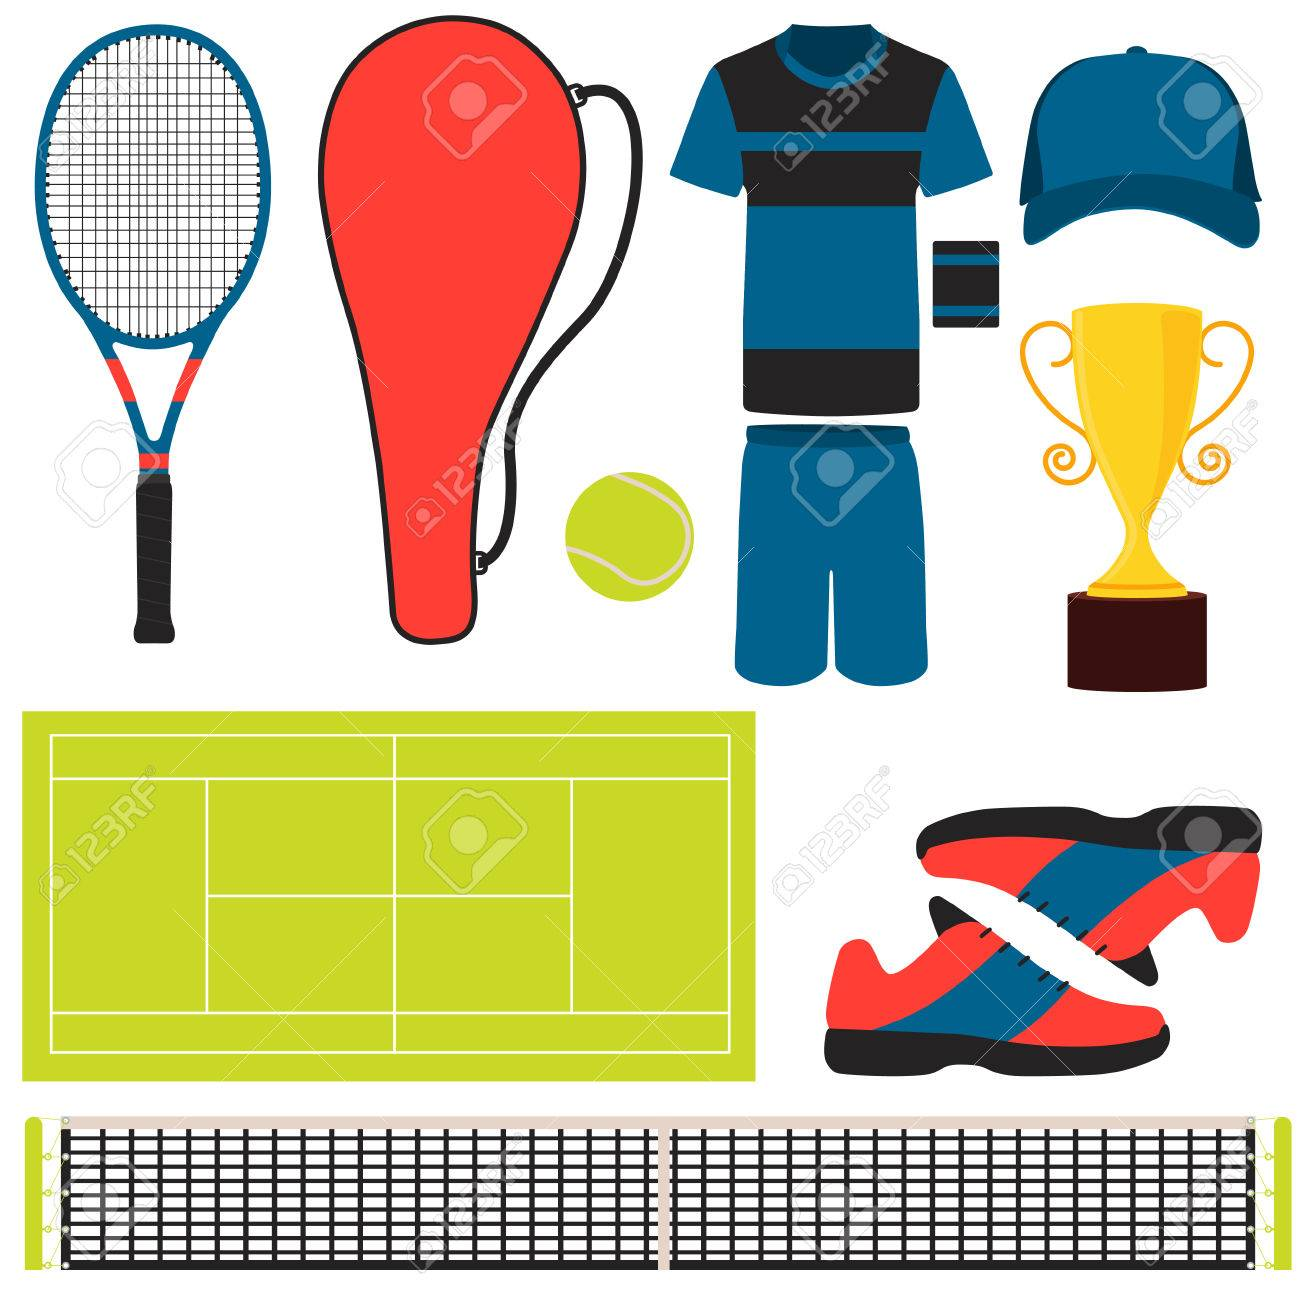 Set Tennis Clothes And Equipment Vector Illustration Royalty Free Cliparts Vectors And Stock Illustration Image 53035129